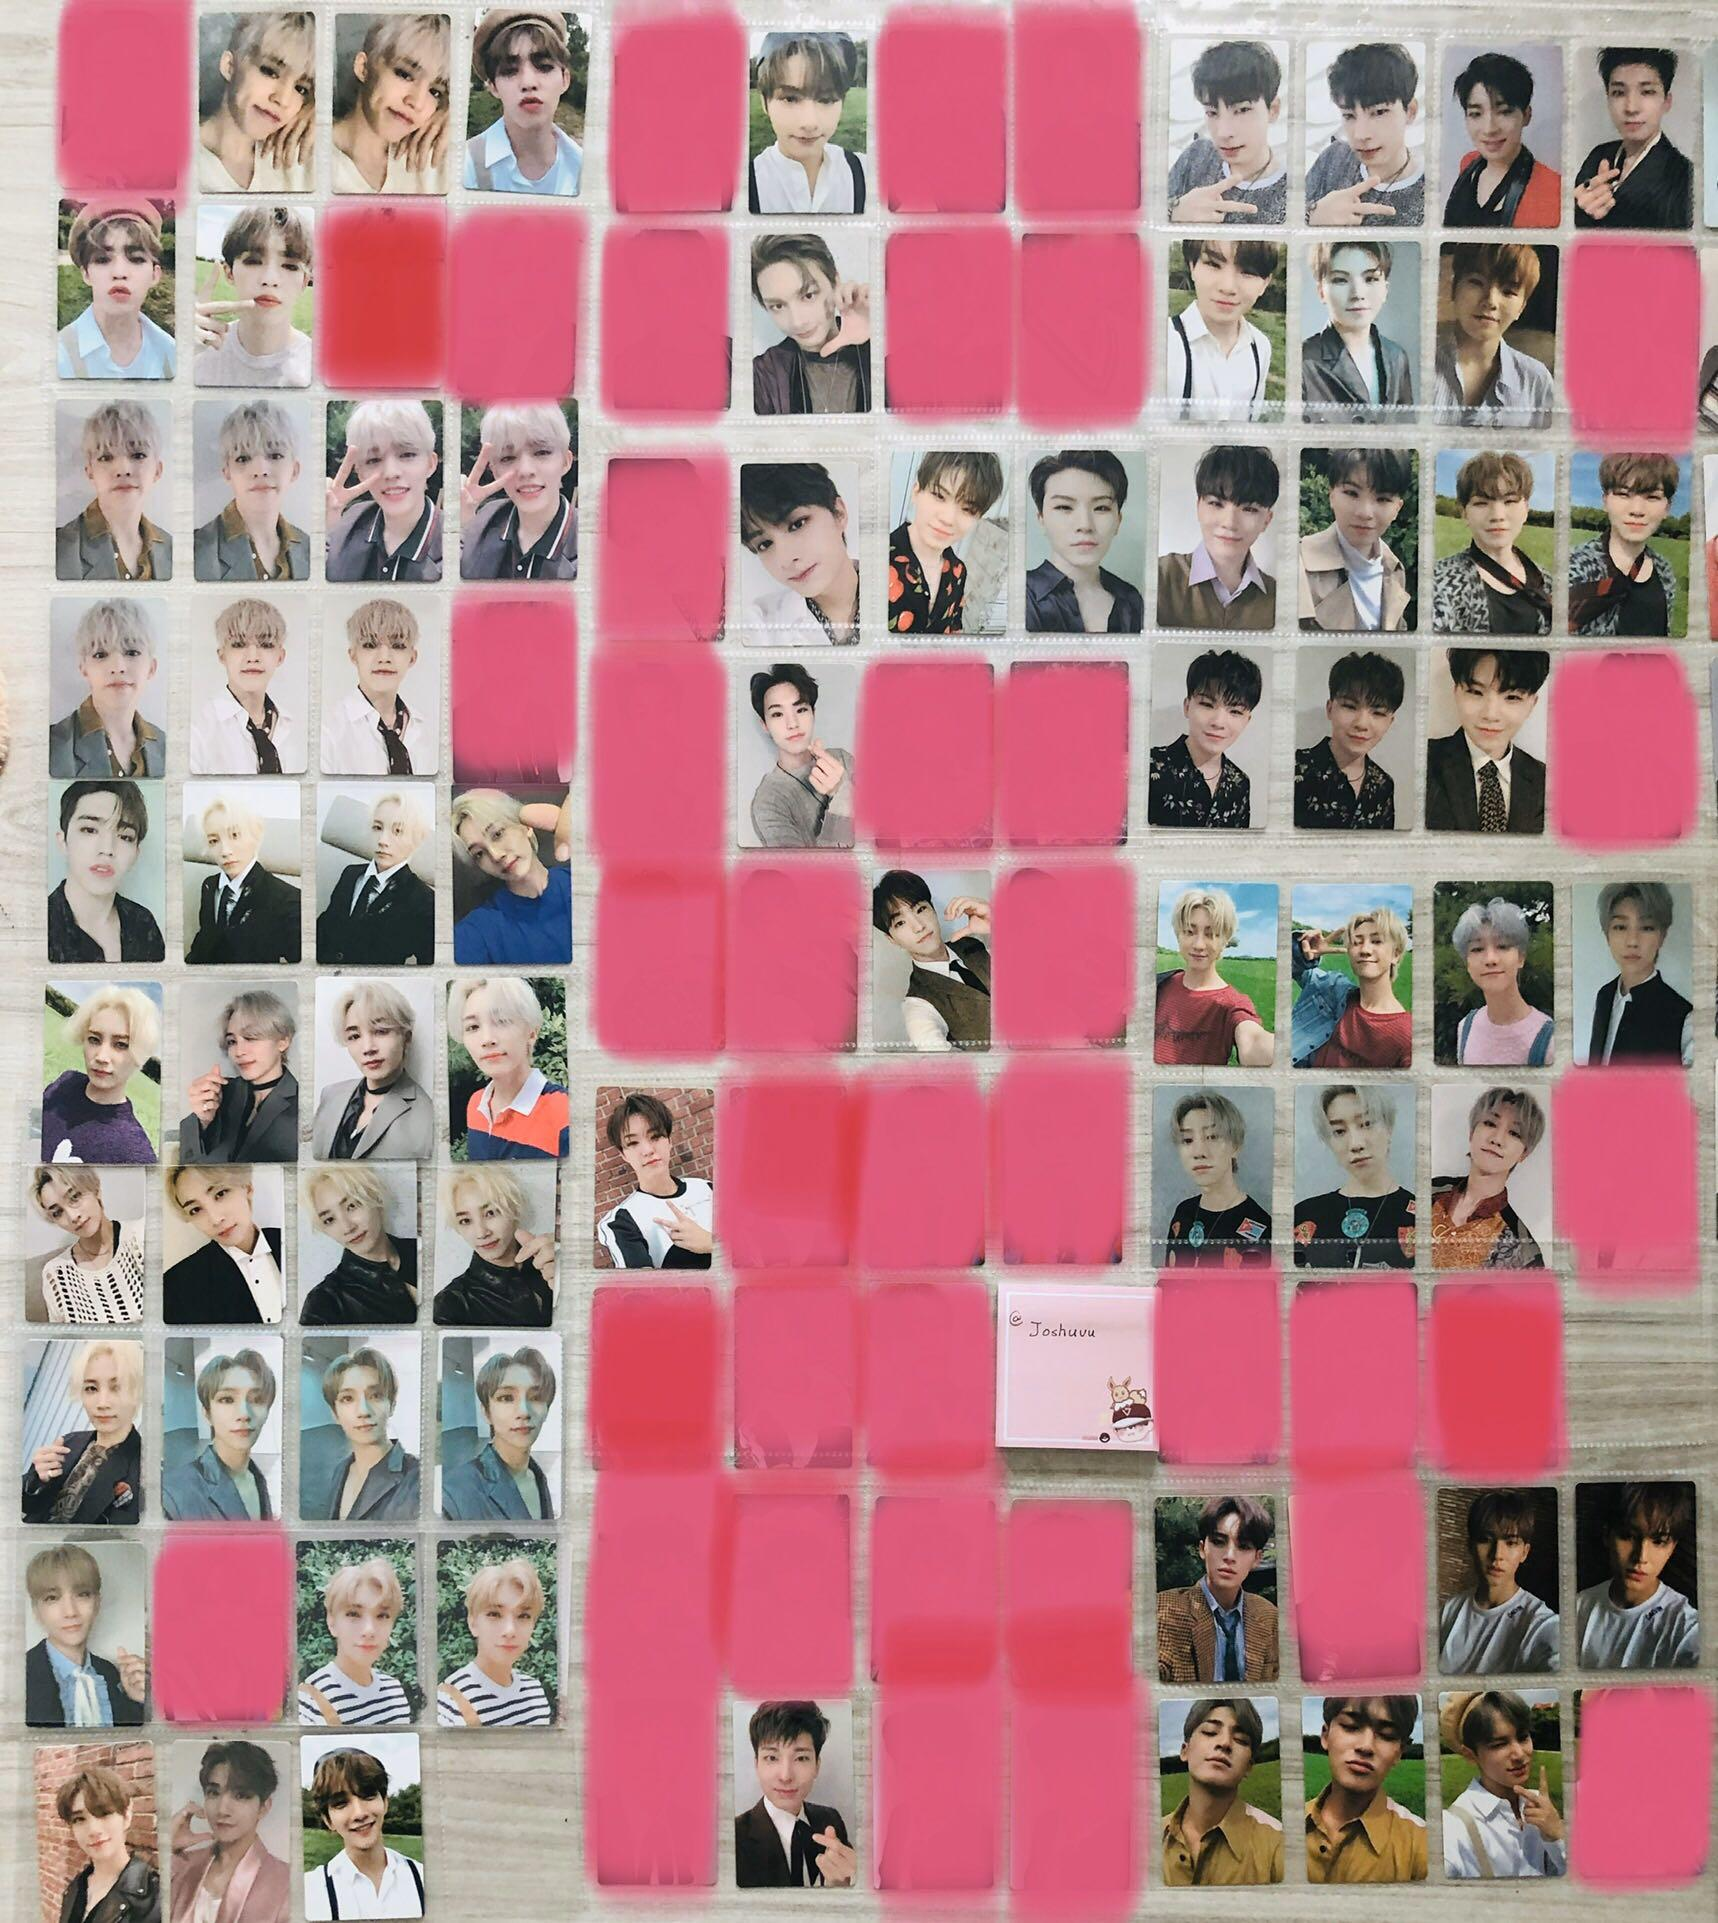 【WTS】SEVENTEEN AN ODE PC/PB/STICKERS/POSTERS